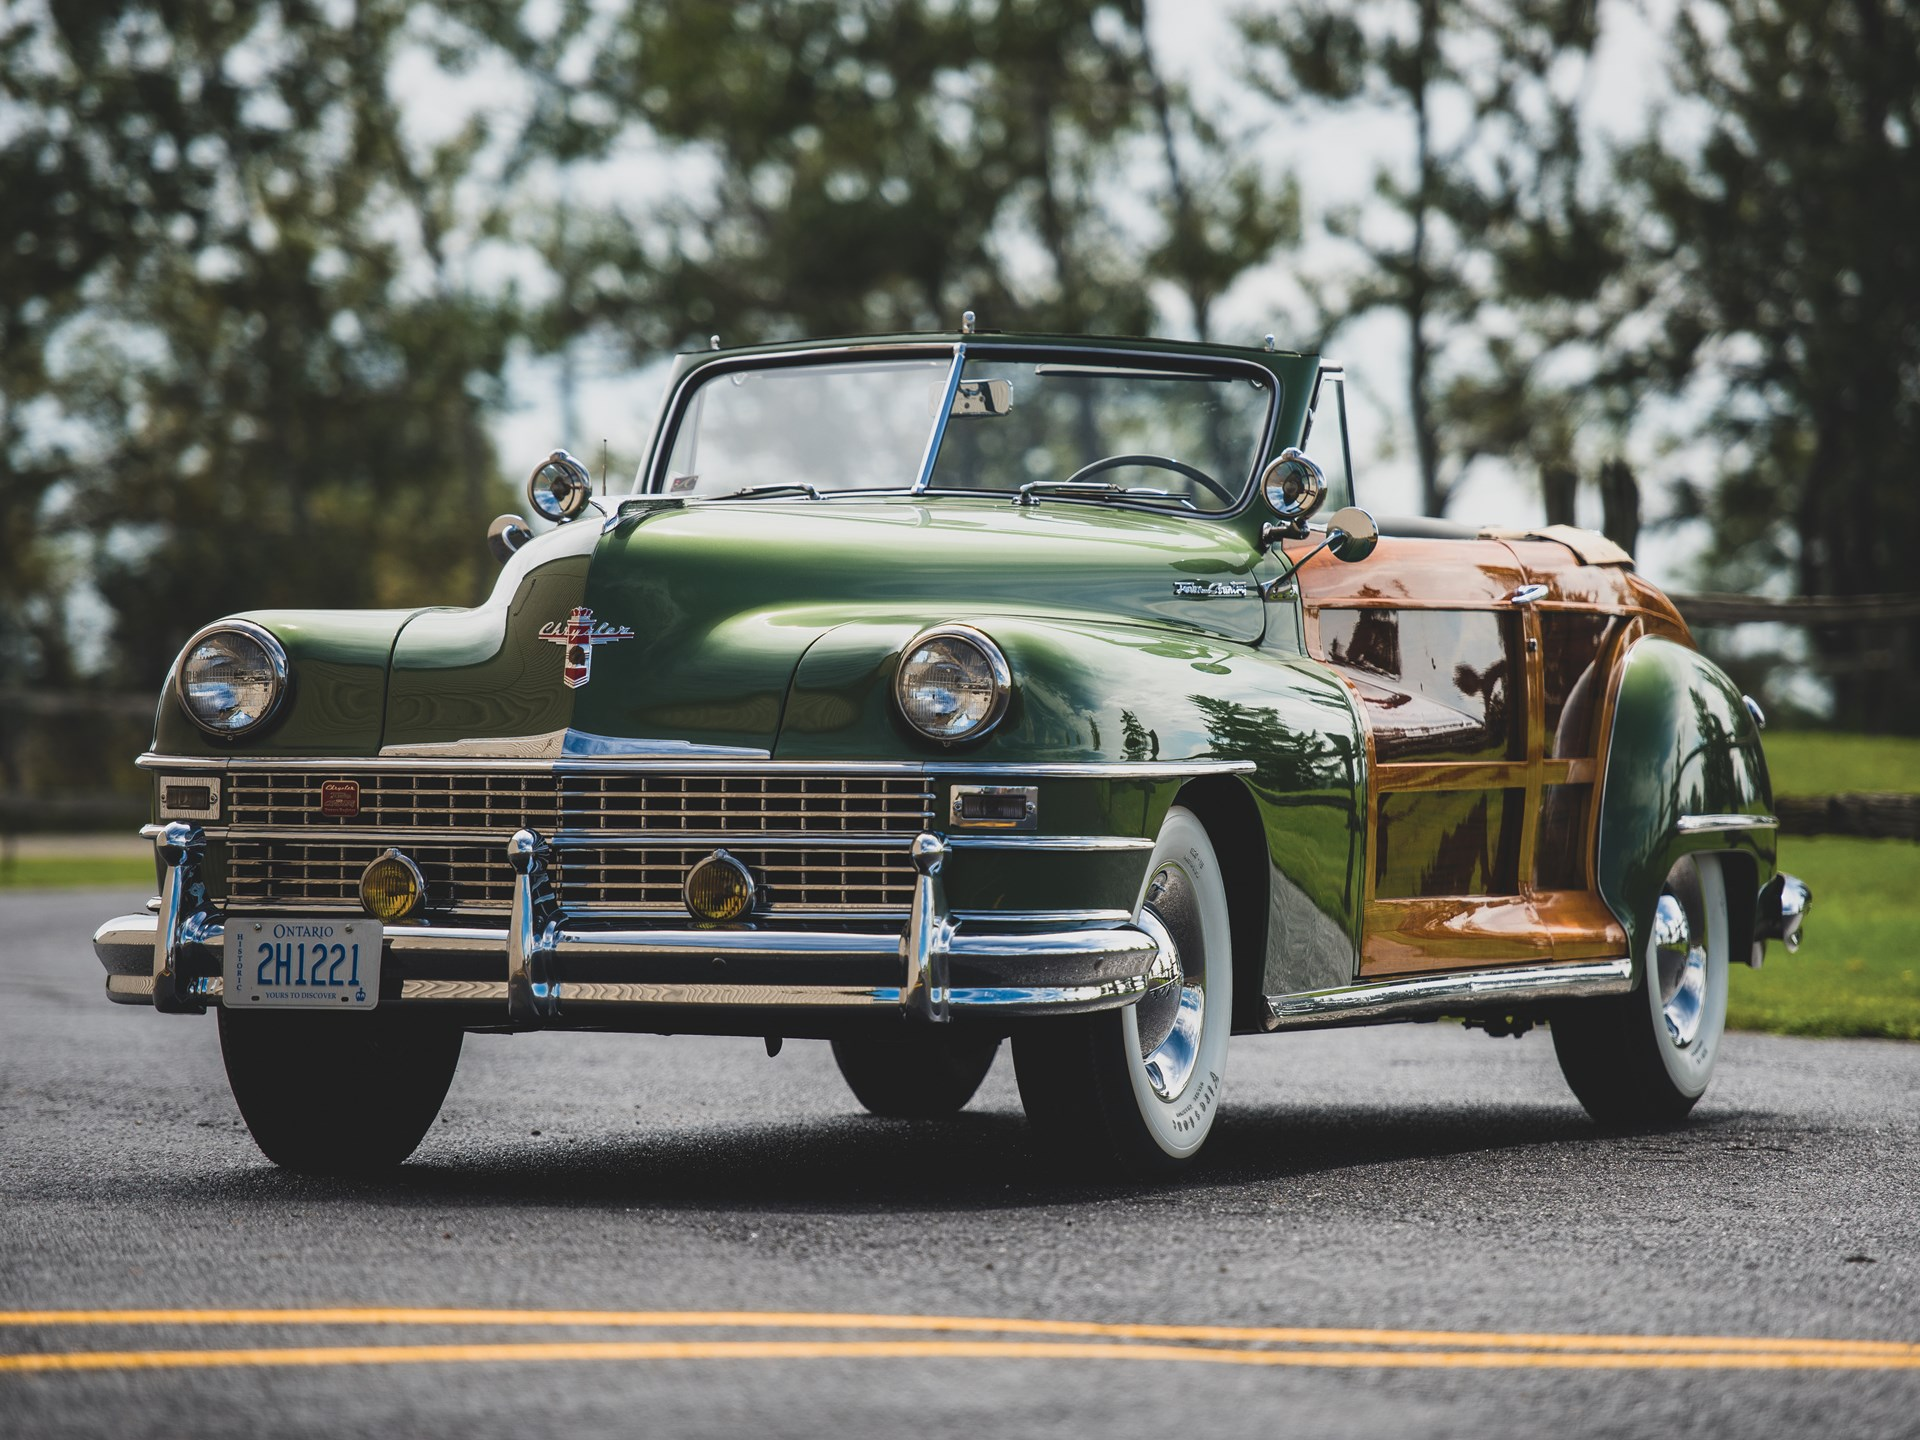 Image result for rm hershey 1949 Chrysler Town & Country Convertible